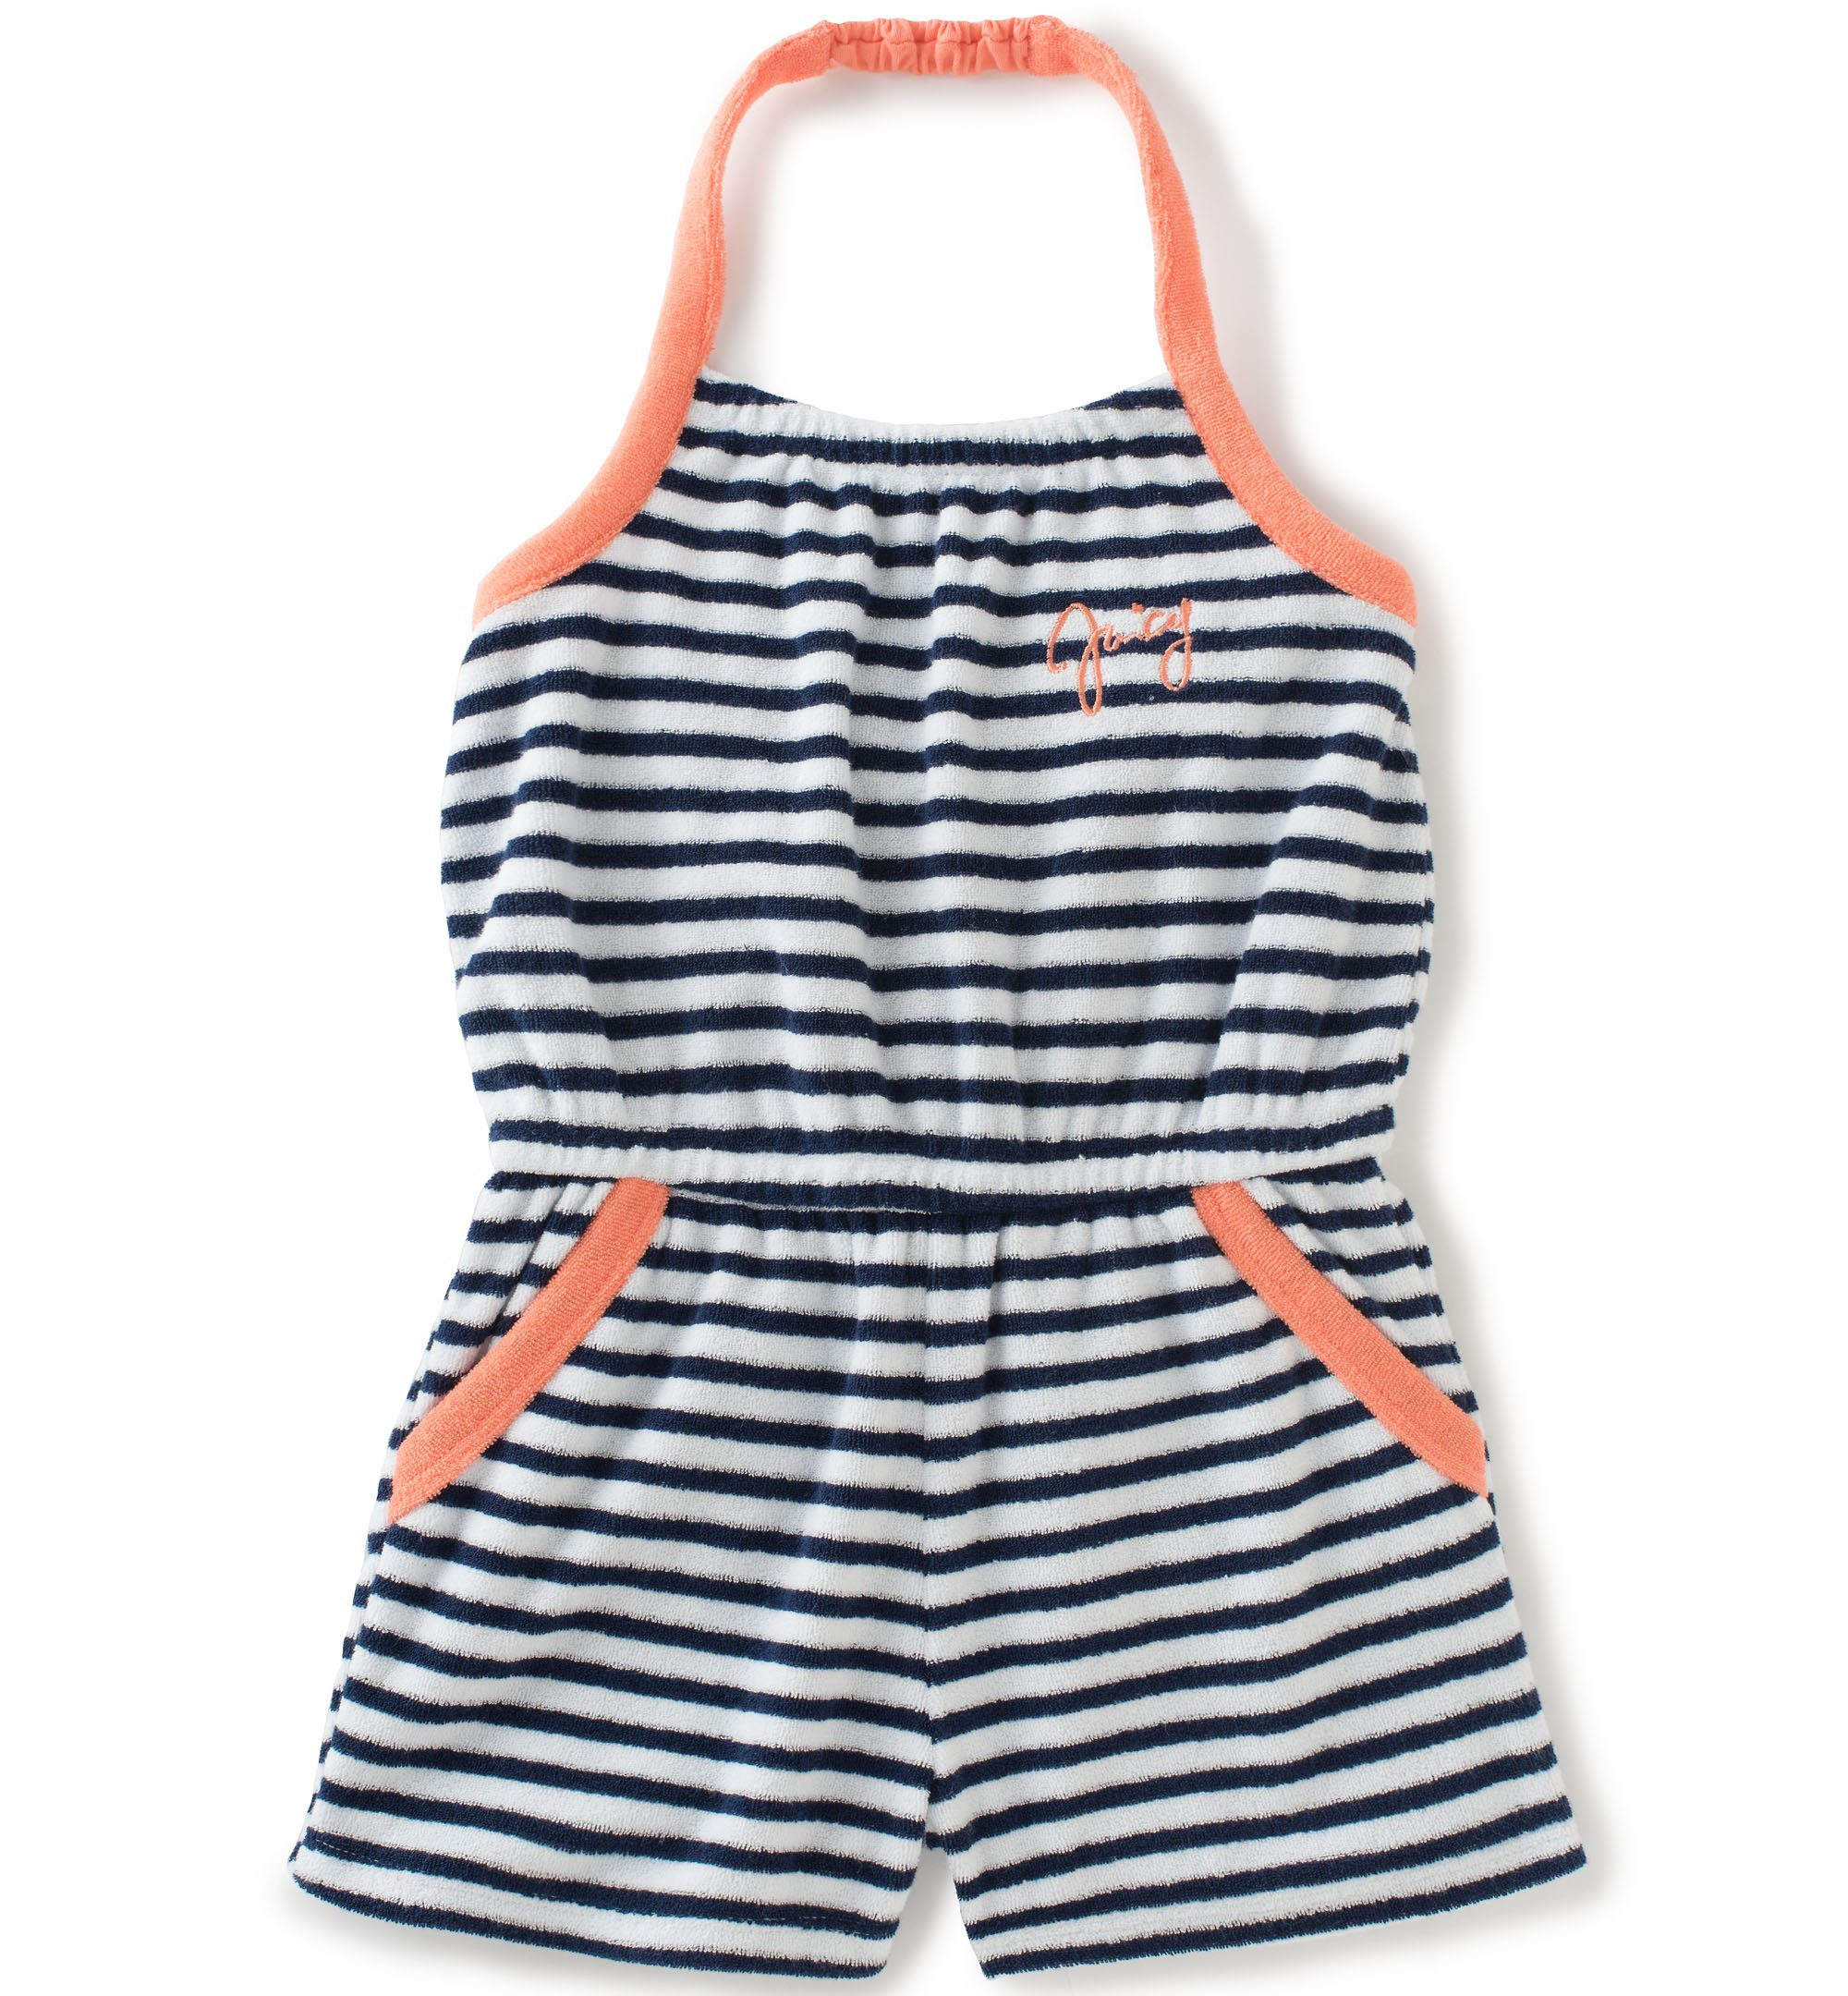 Juicy Couture Little Girls' Romper-Sport, Navy/White, 5